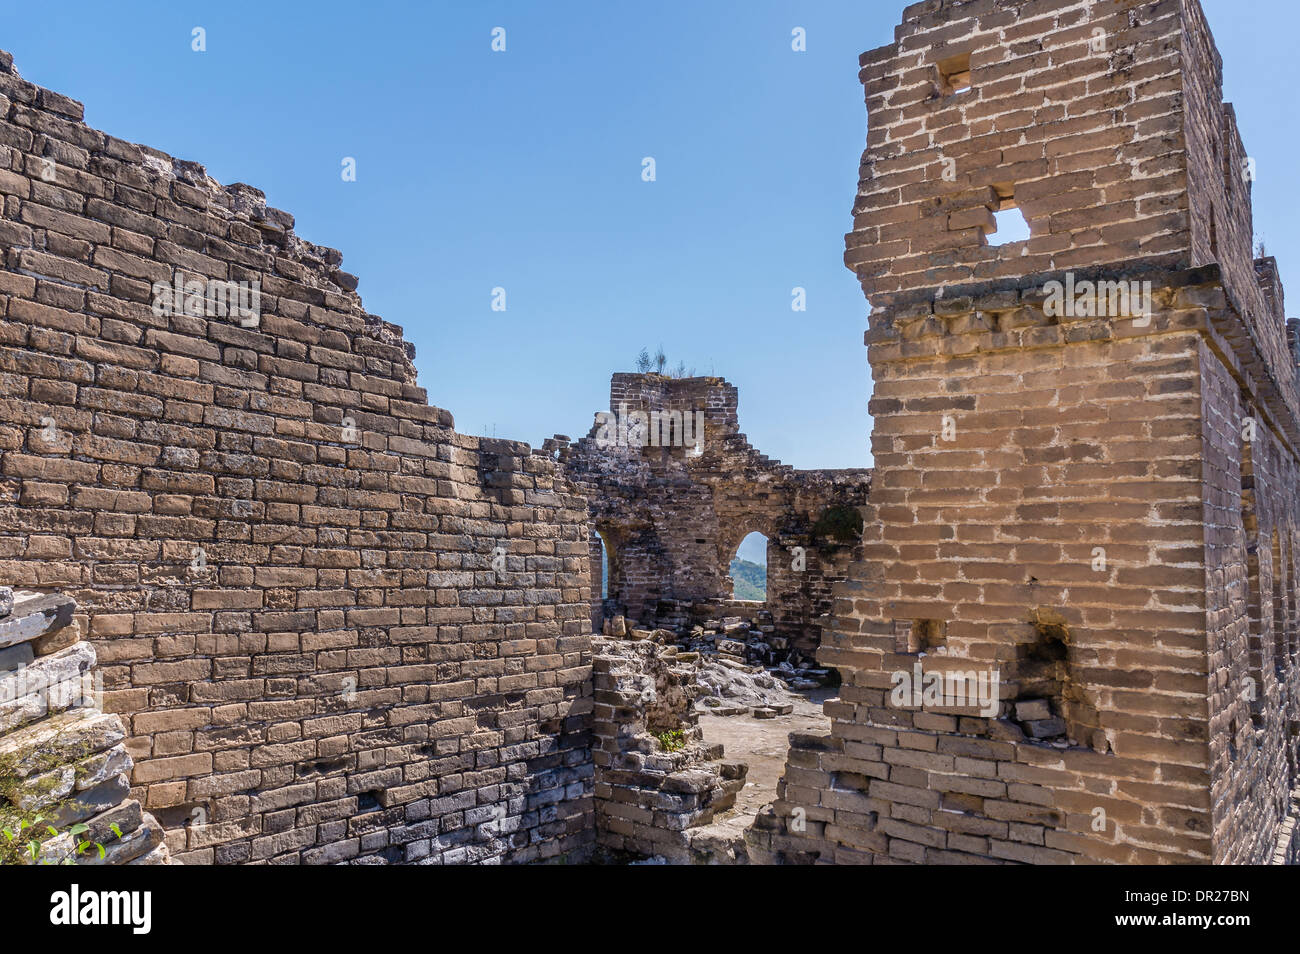 Jinshanling Great Wall, Hebei Province, China - Stock Image